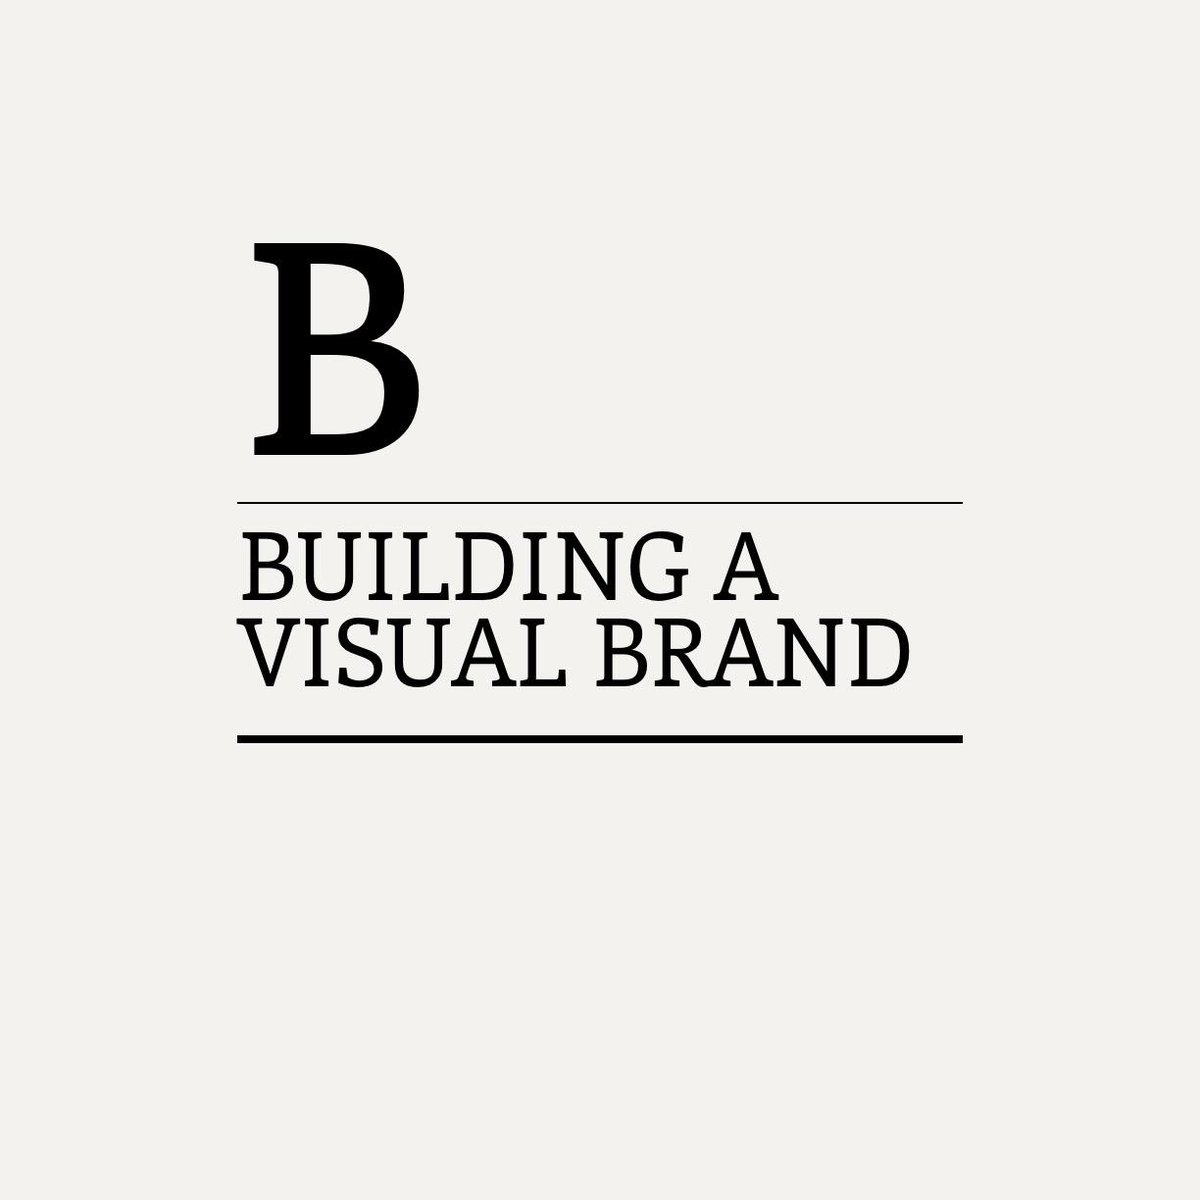 Join our #MTBchat about building a visual brand for your blog http://t.co/DG6XLTojoh